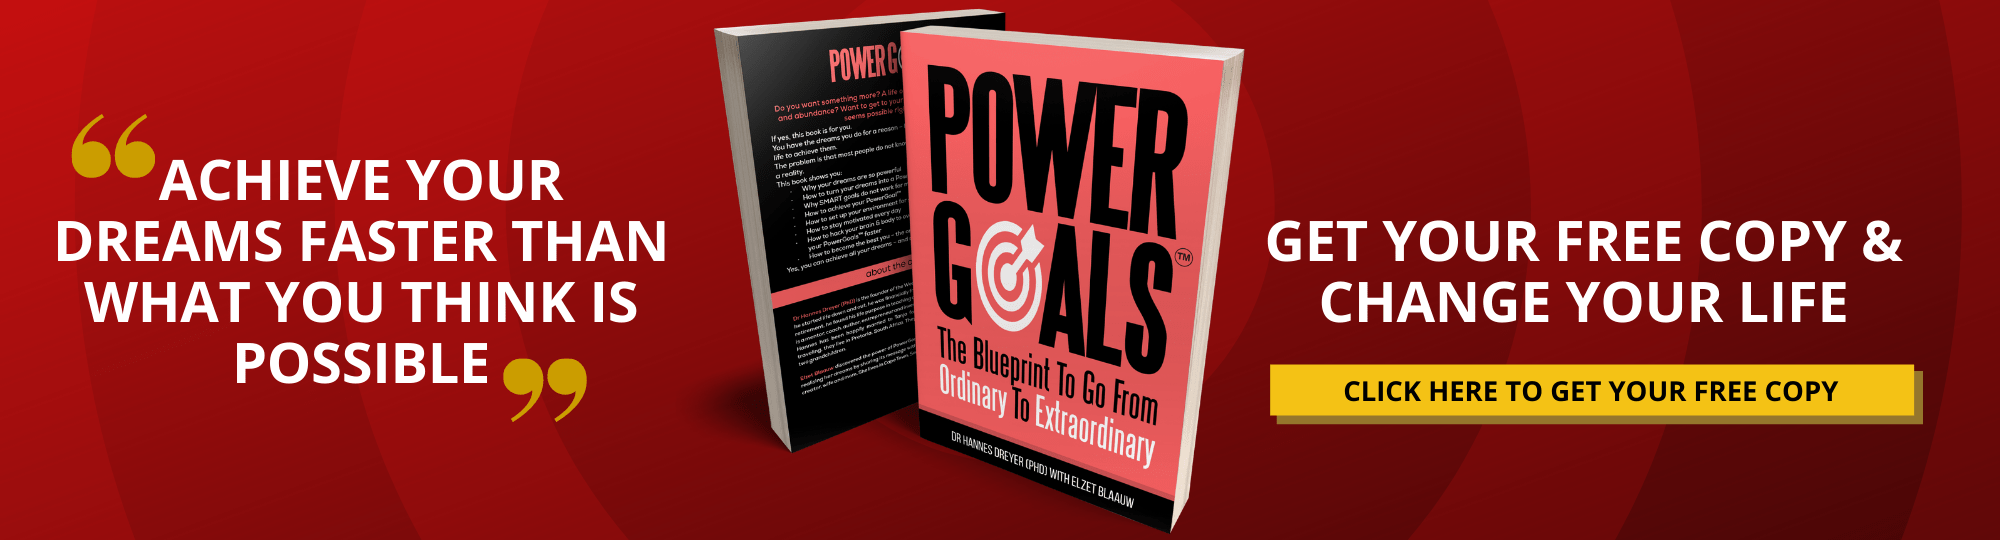 Powergoals ebook